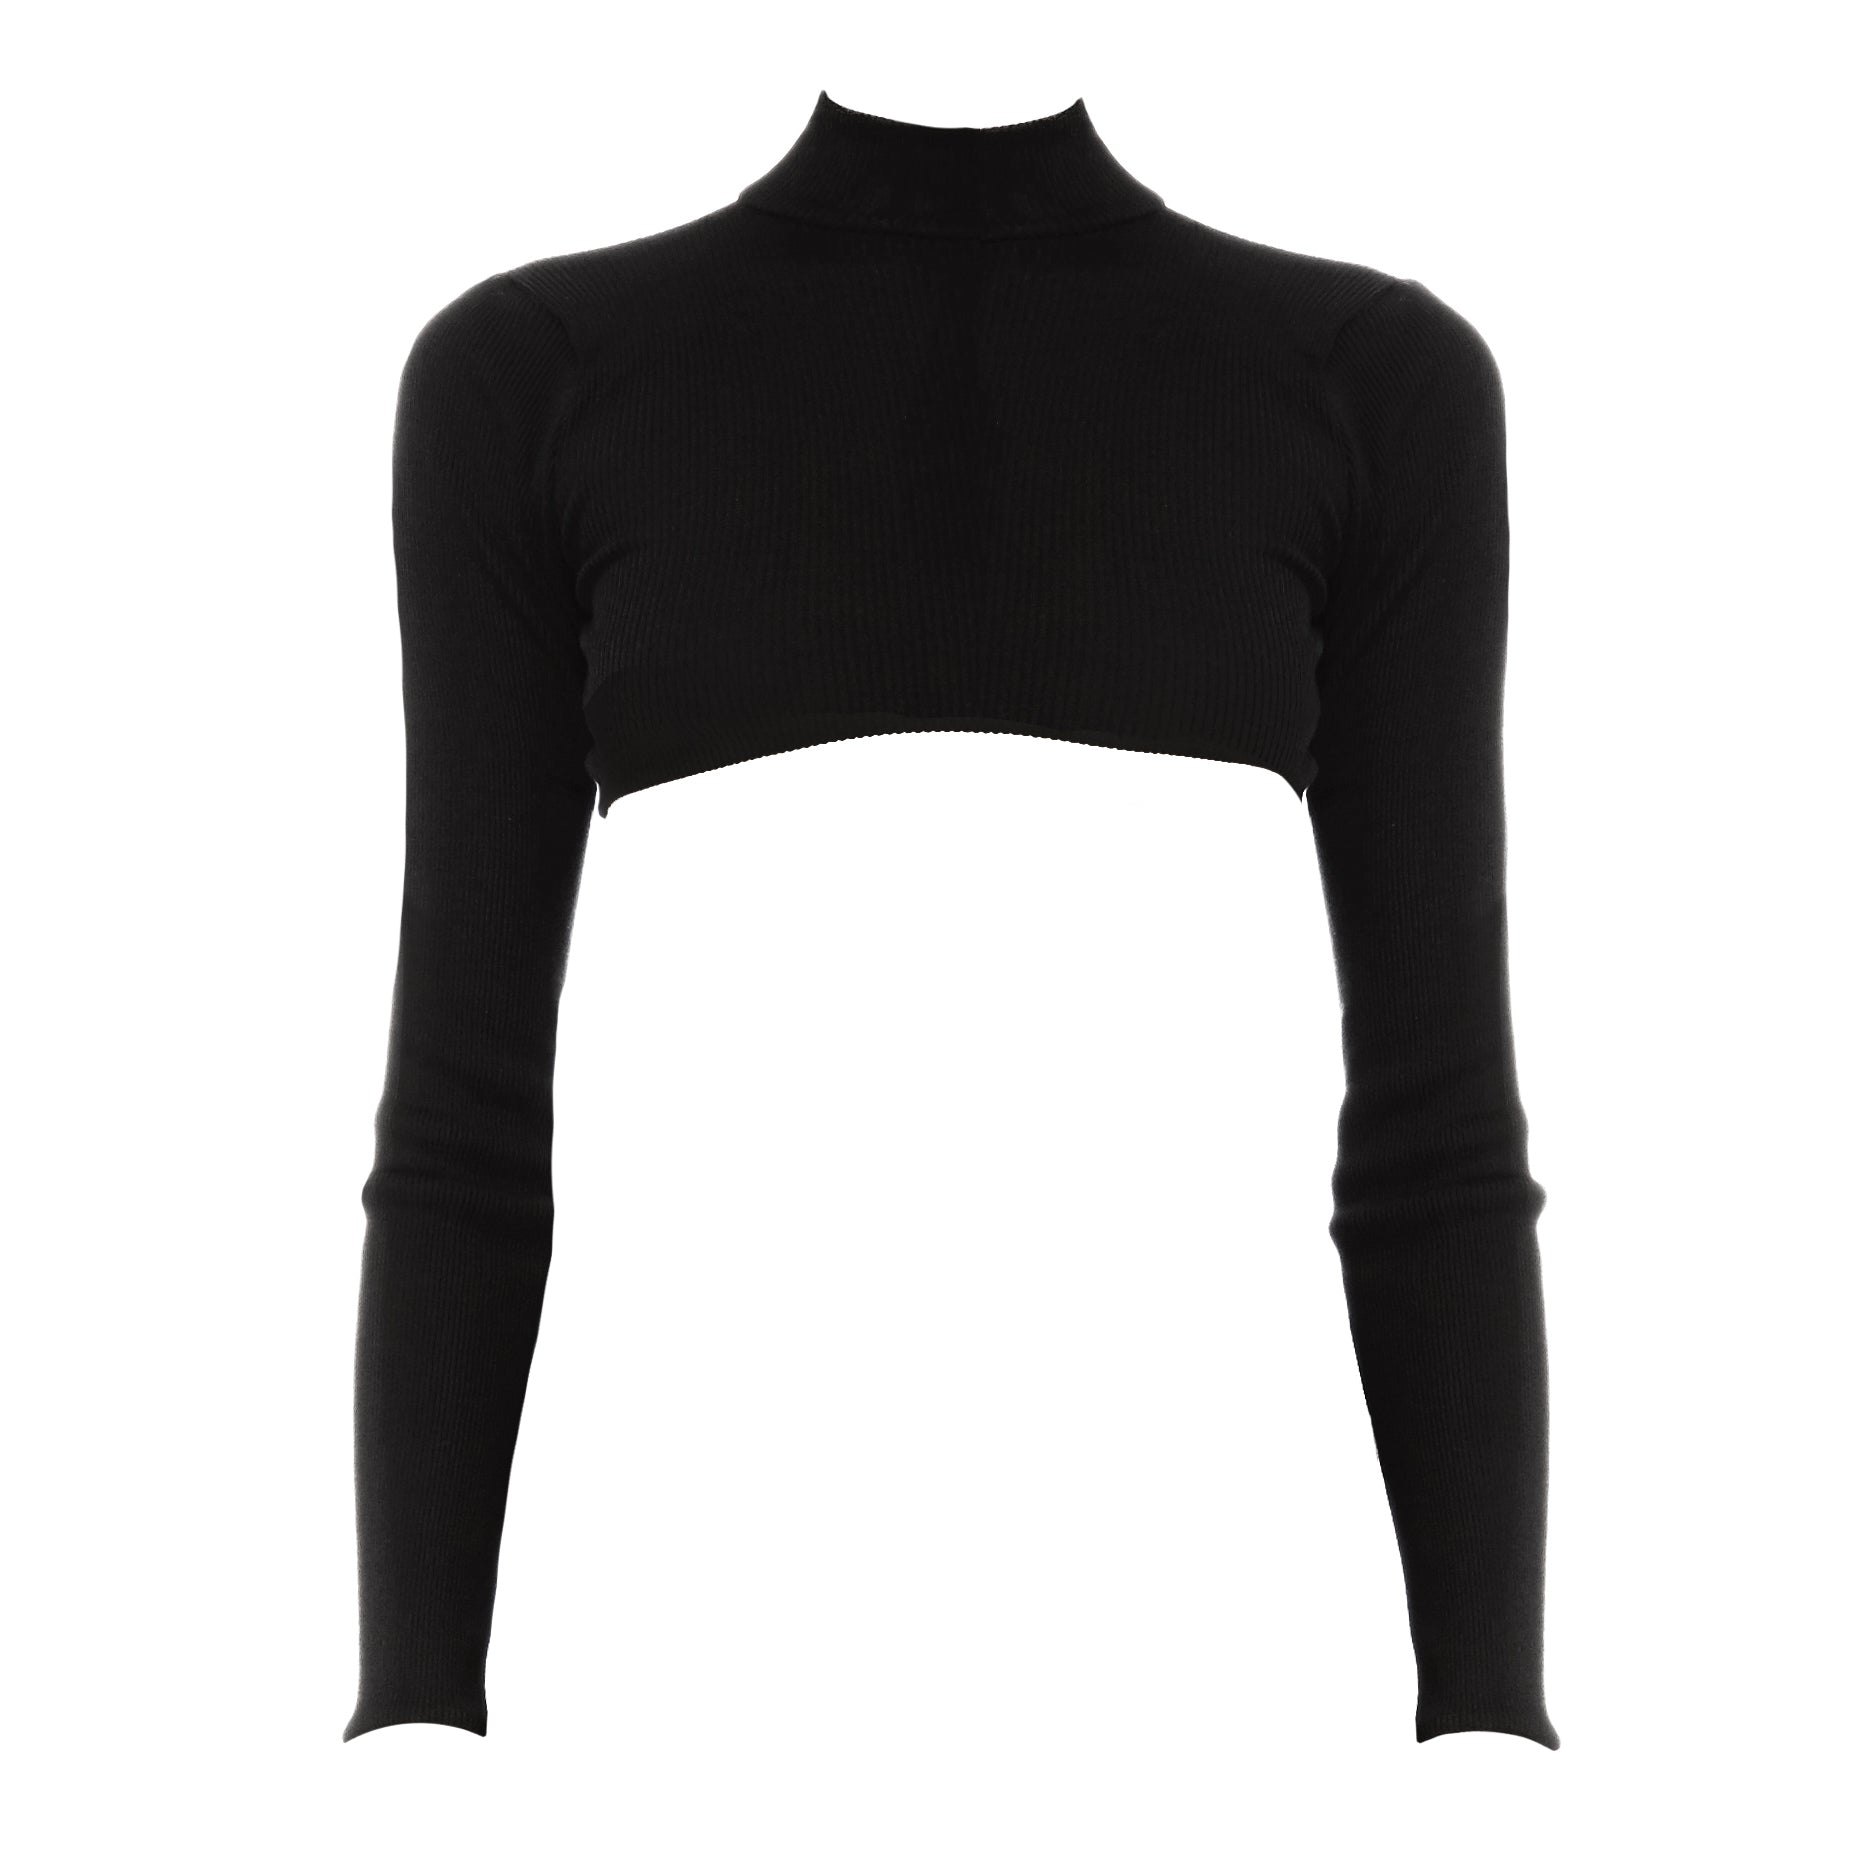 DSTM Chiron long-sleeve crop